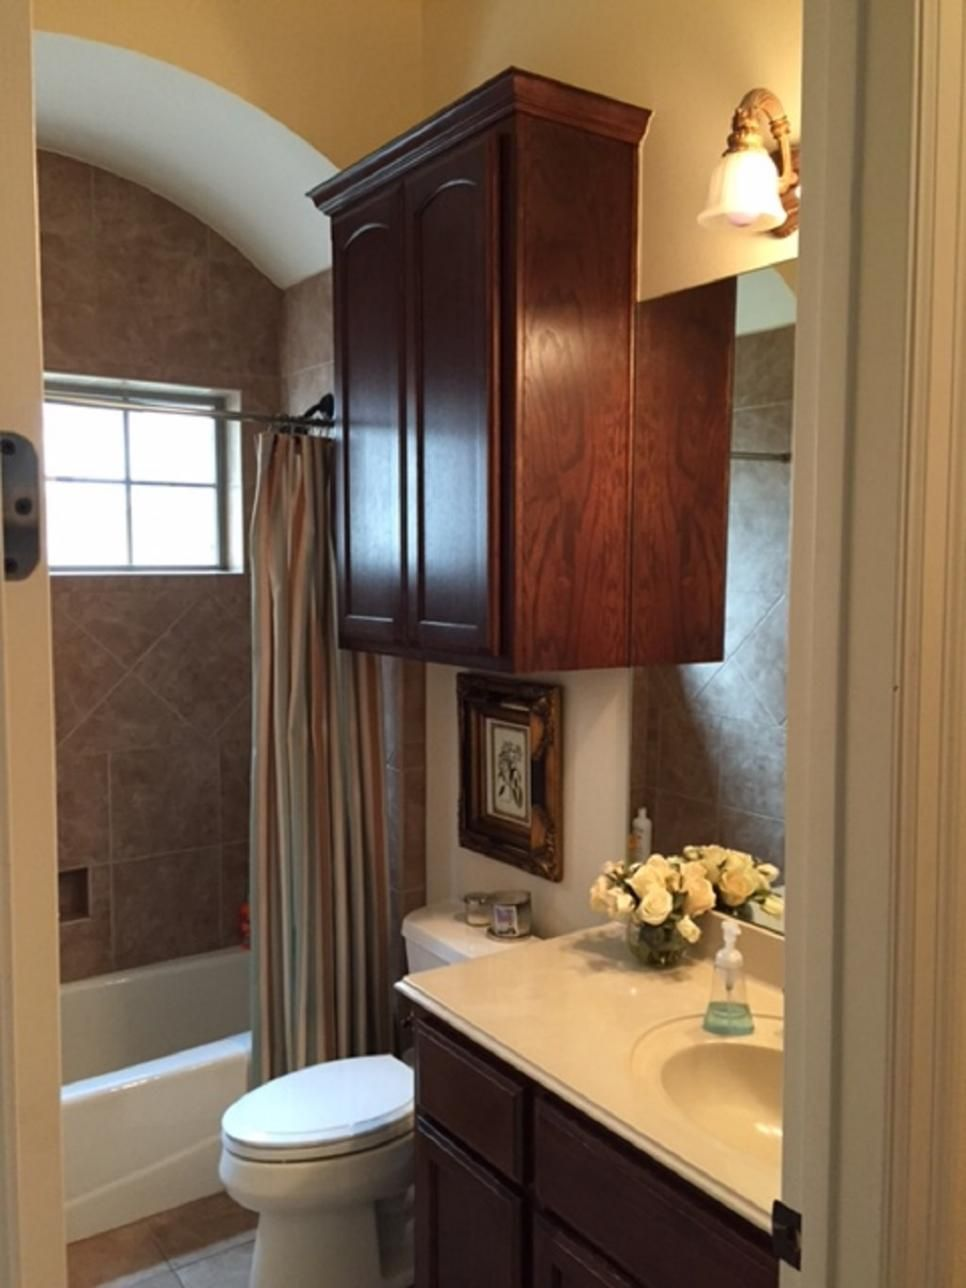 Hgtv Bathroom Renovations: Before-and-After Bathroom Remodels On A Budget